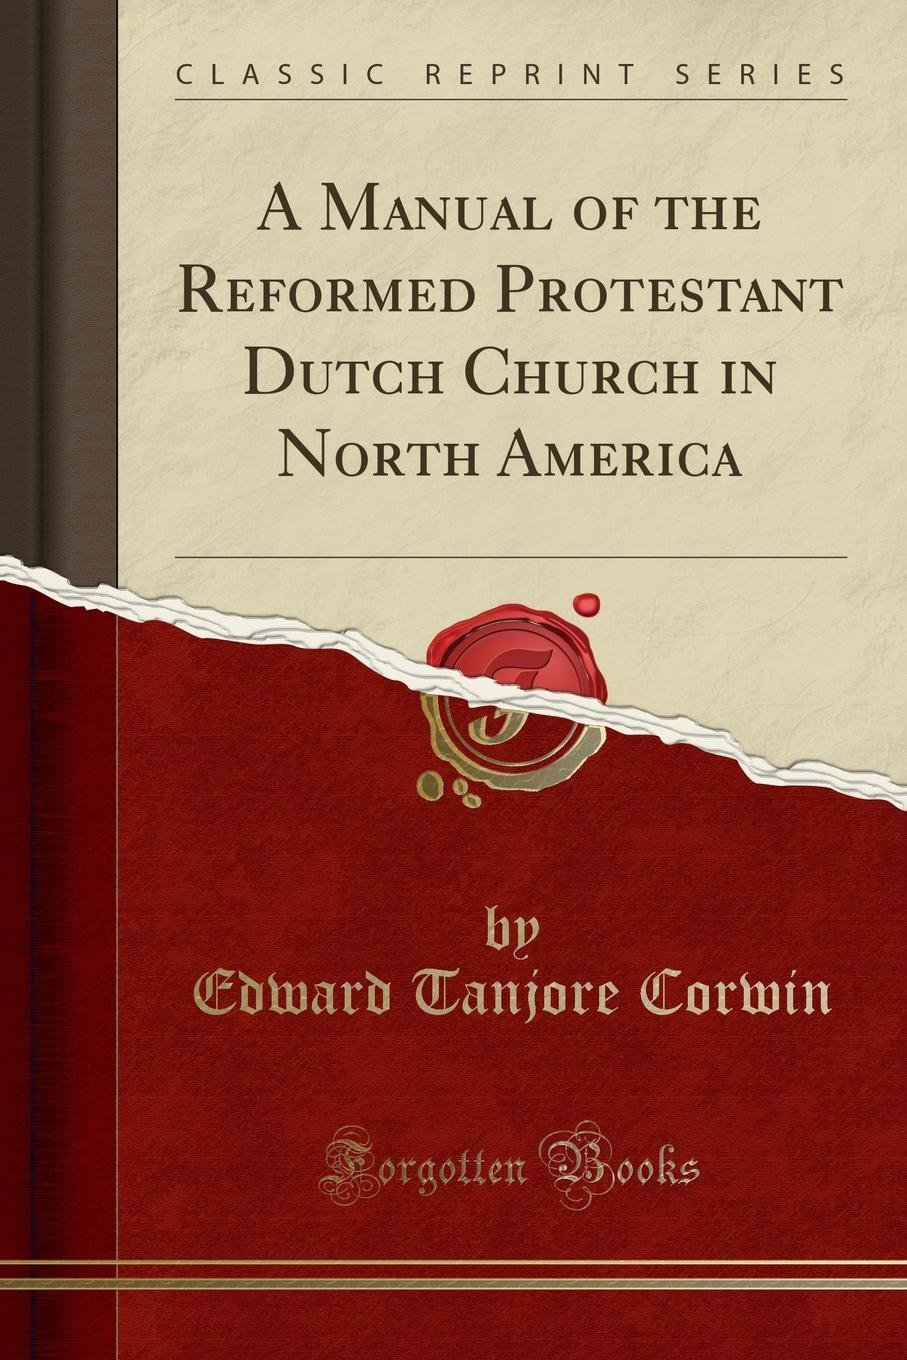 A Manual of the Reformed Protestant Dutch Church in North America (Classic Reprint) PDF